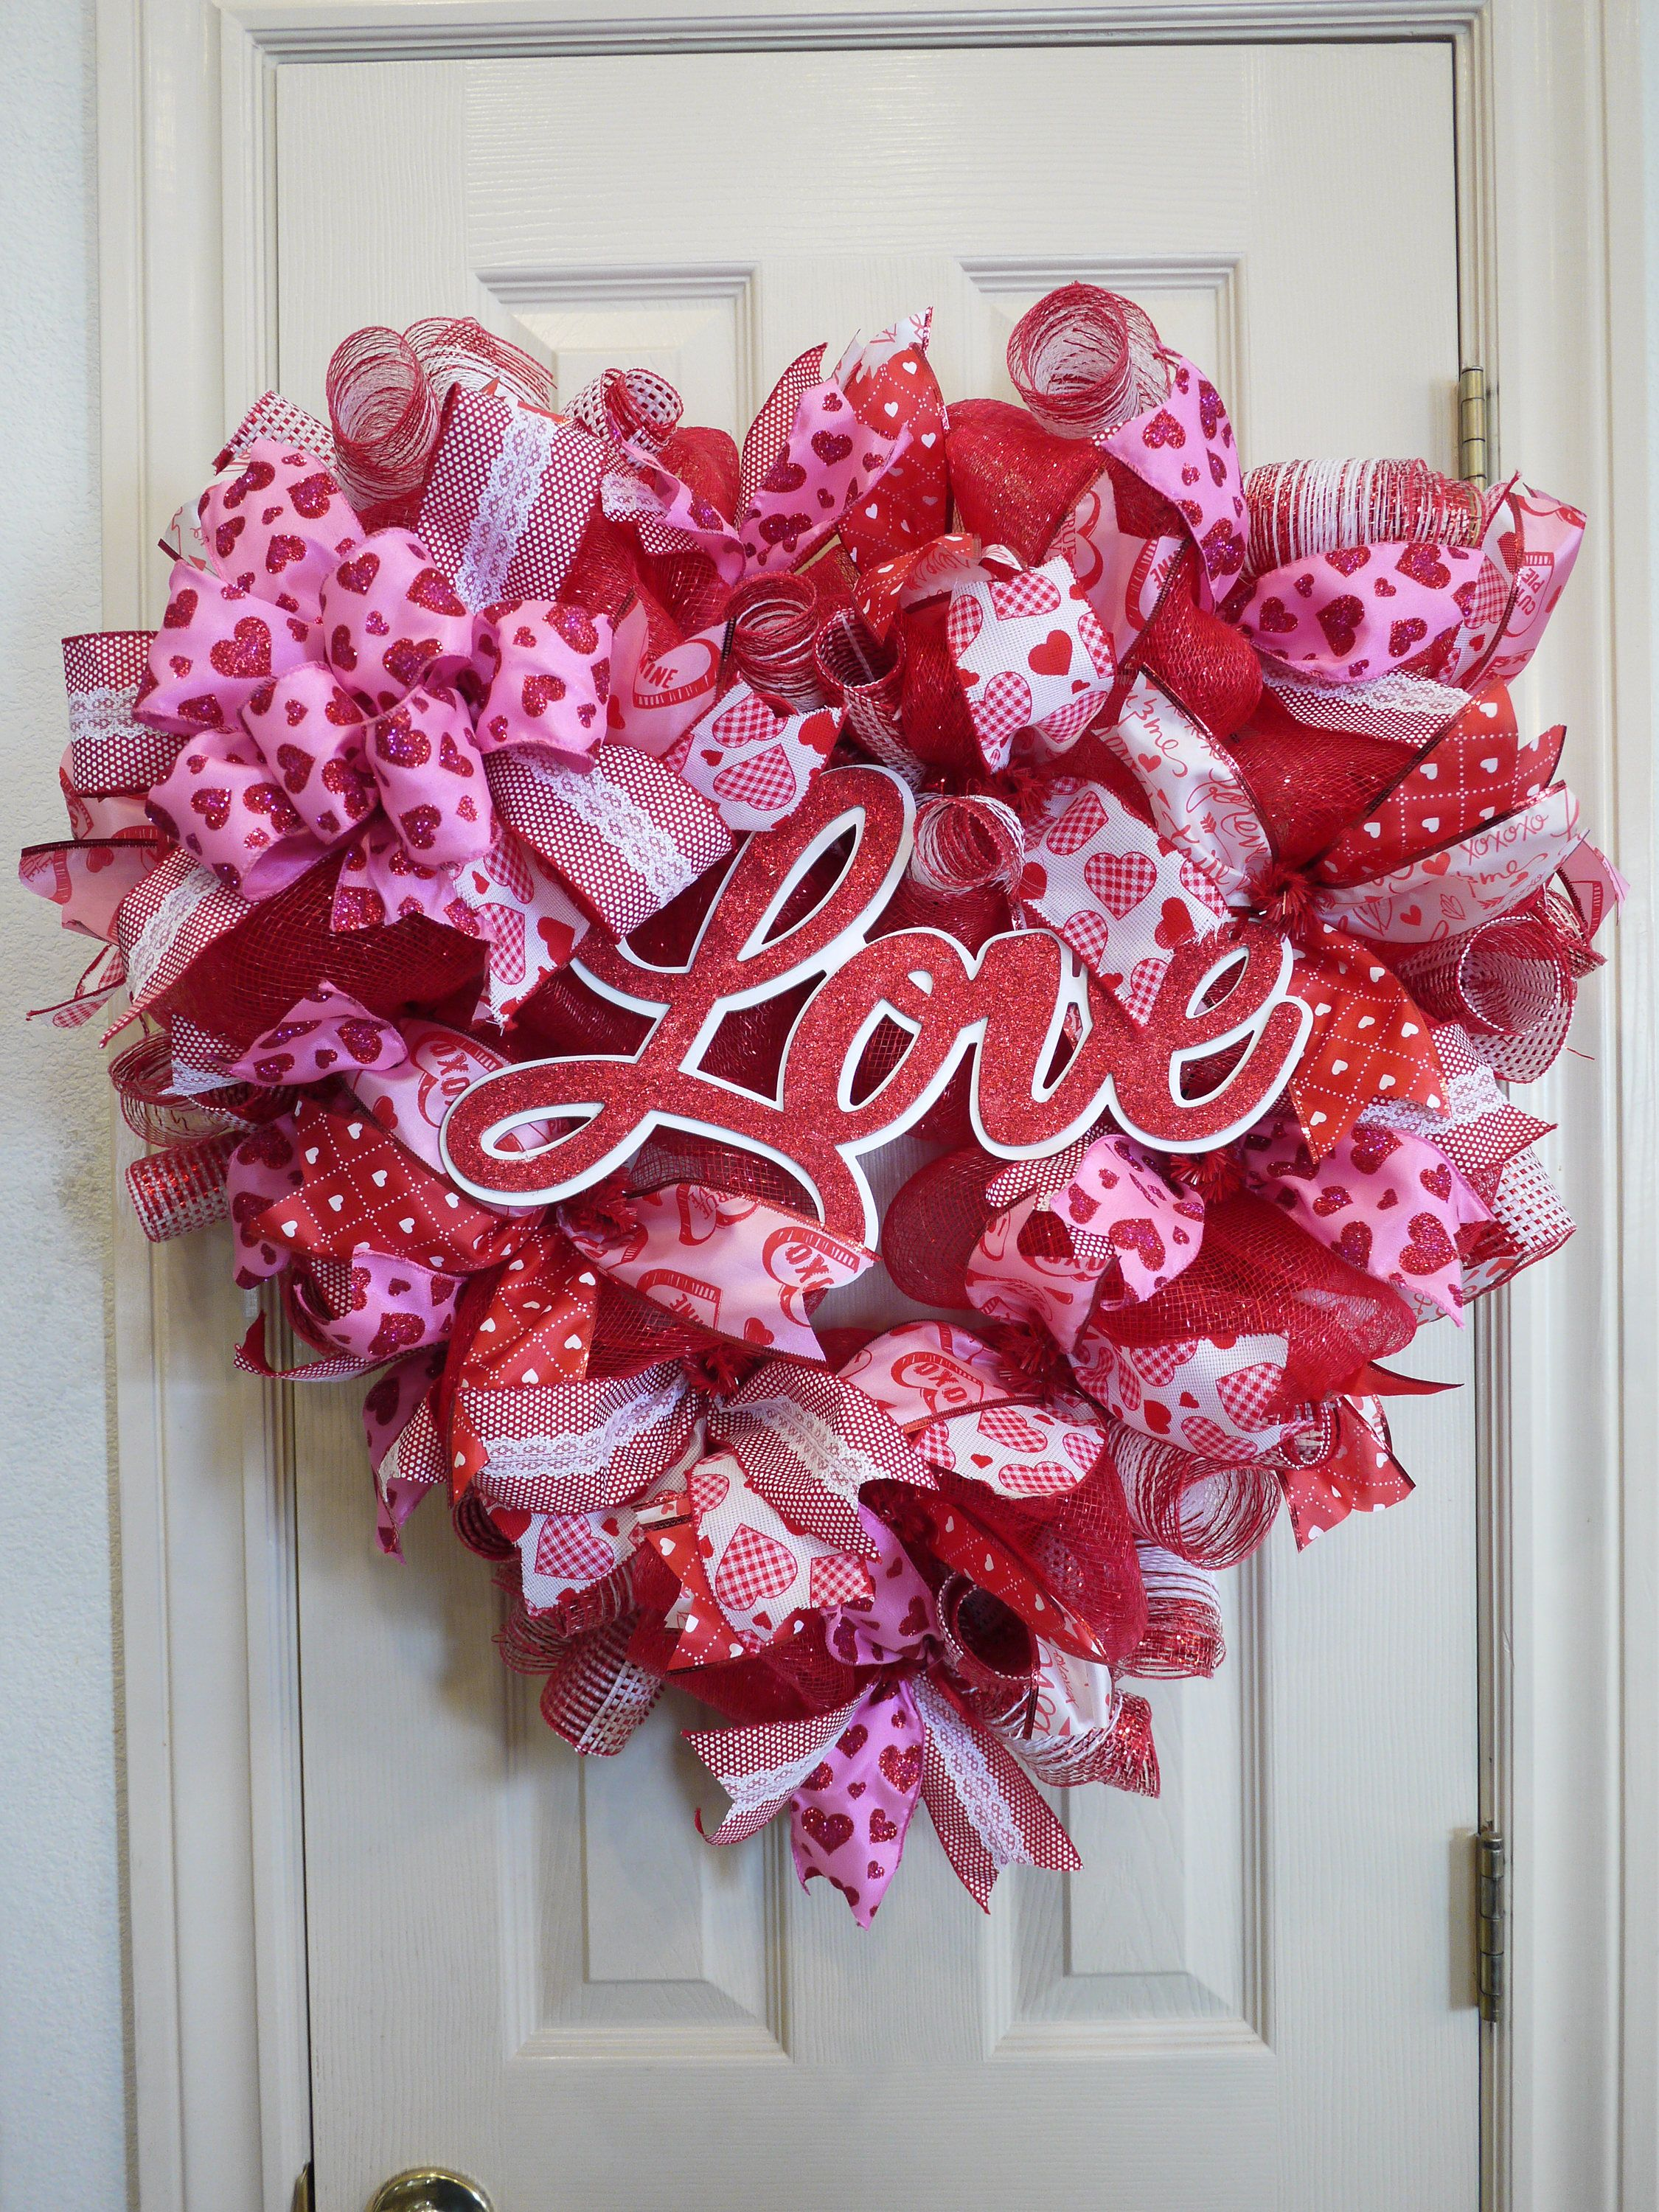 Valentineu0027s Day Wreath, Heart Valentine Mesh Wreath, Mesh And Ribbon Heart  Wreath, Heart